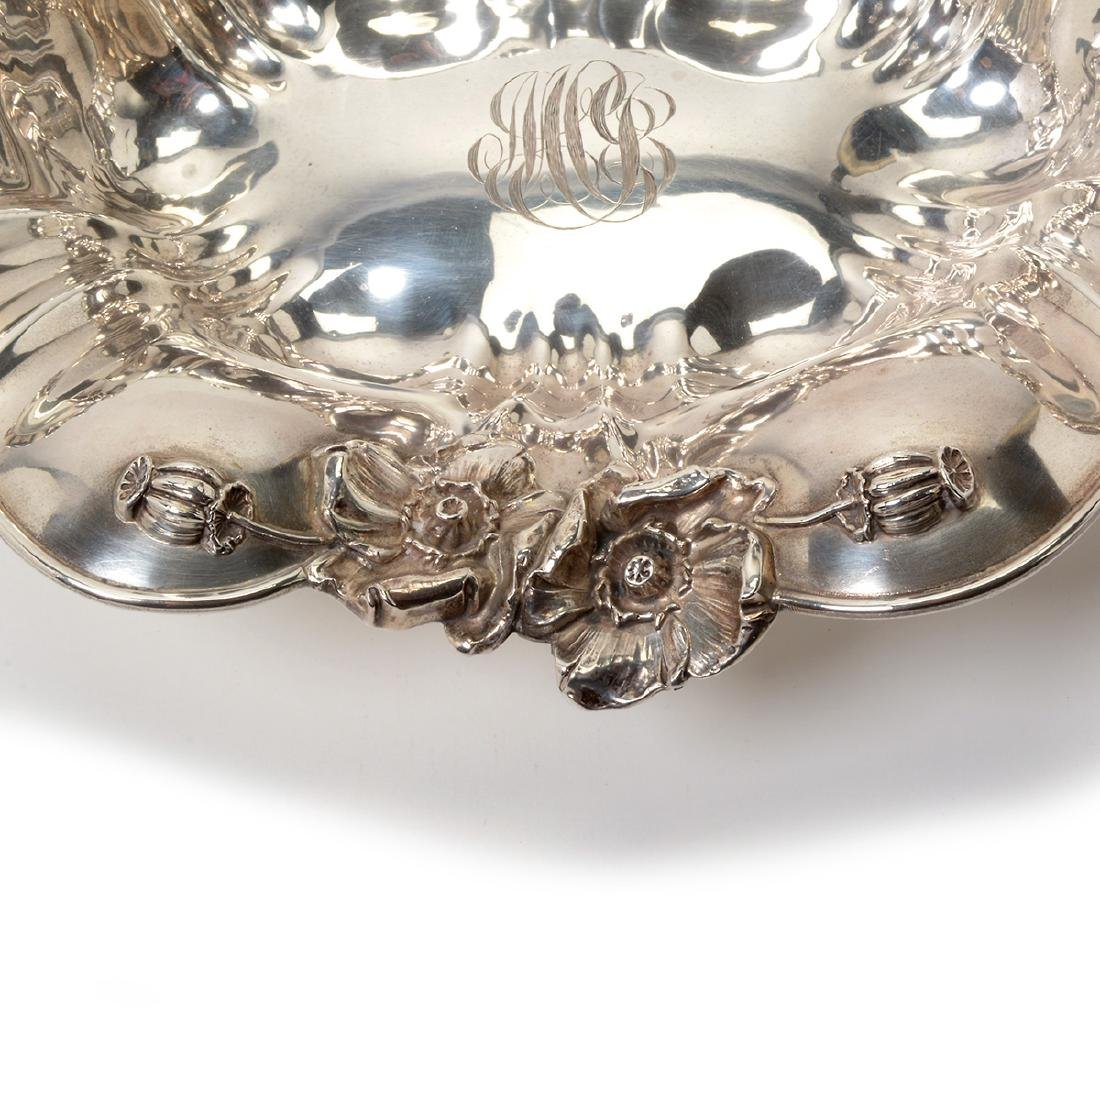 Art Nouveau Sterling Bowl with Floral Decoration - 5